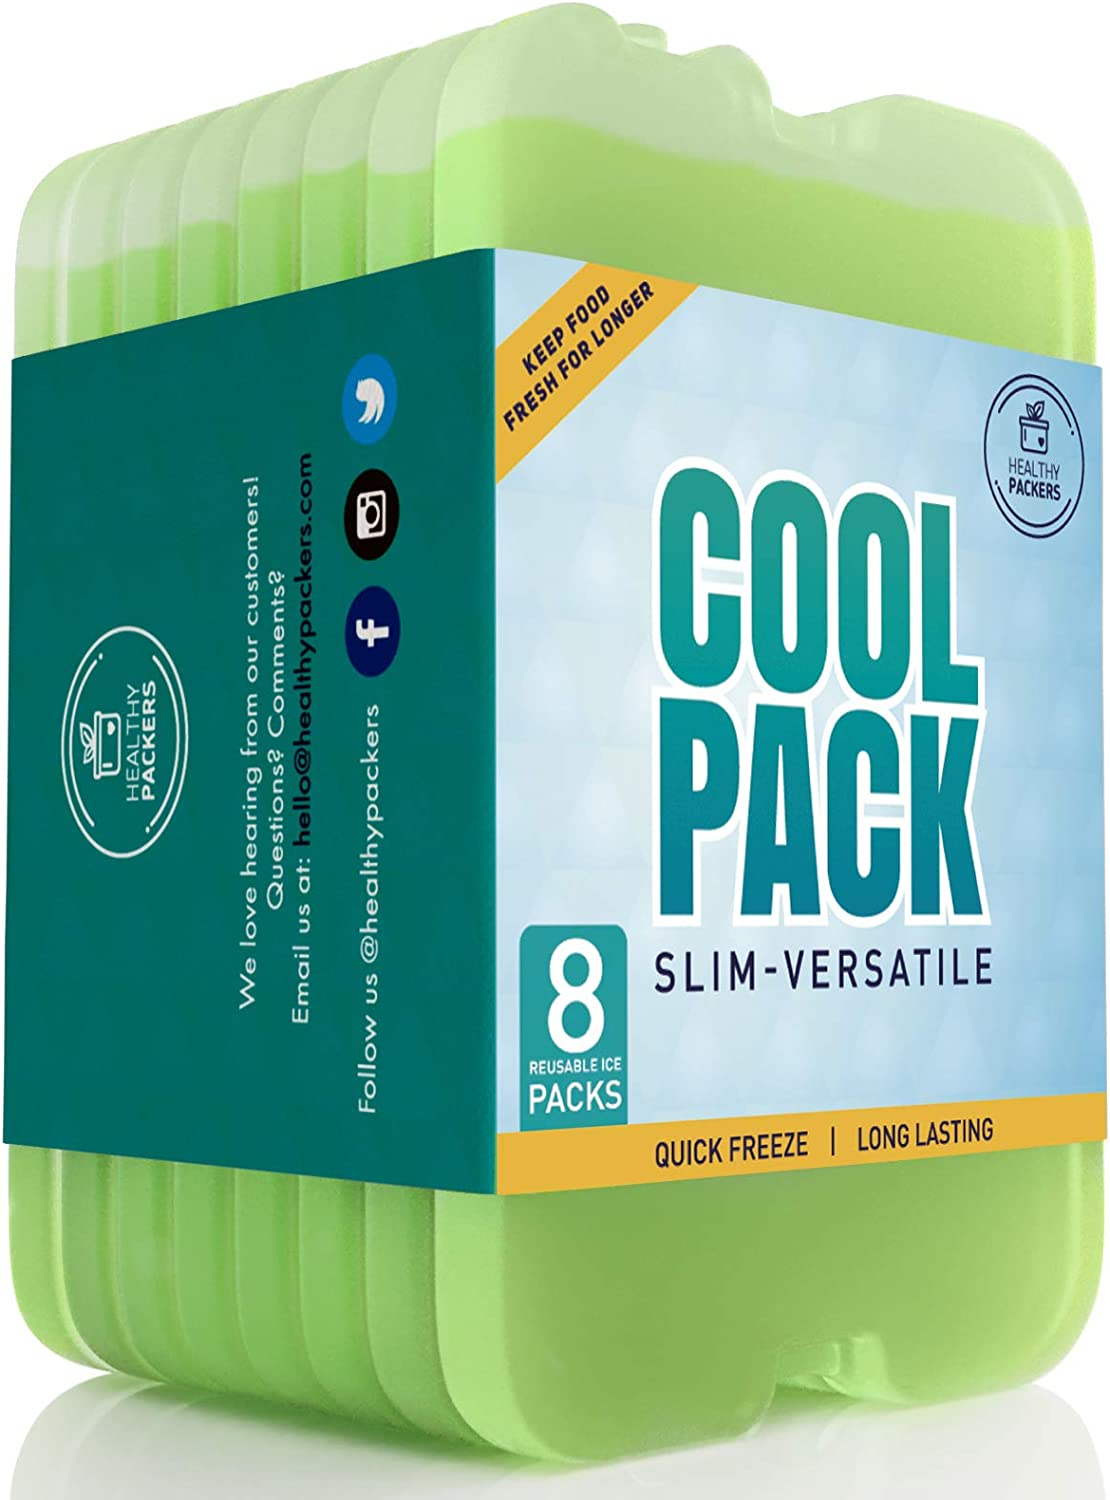 Healthy Packers Ice Pack for Lunch Box - Freezer Packs - Original Cool Pack | Slim & Long-Lasting Ice Packs for Your Lunch or Cooler Bag (8-Pack)